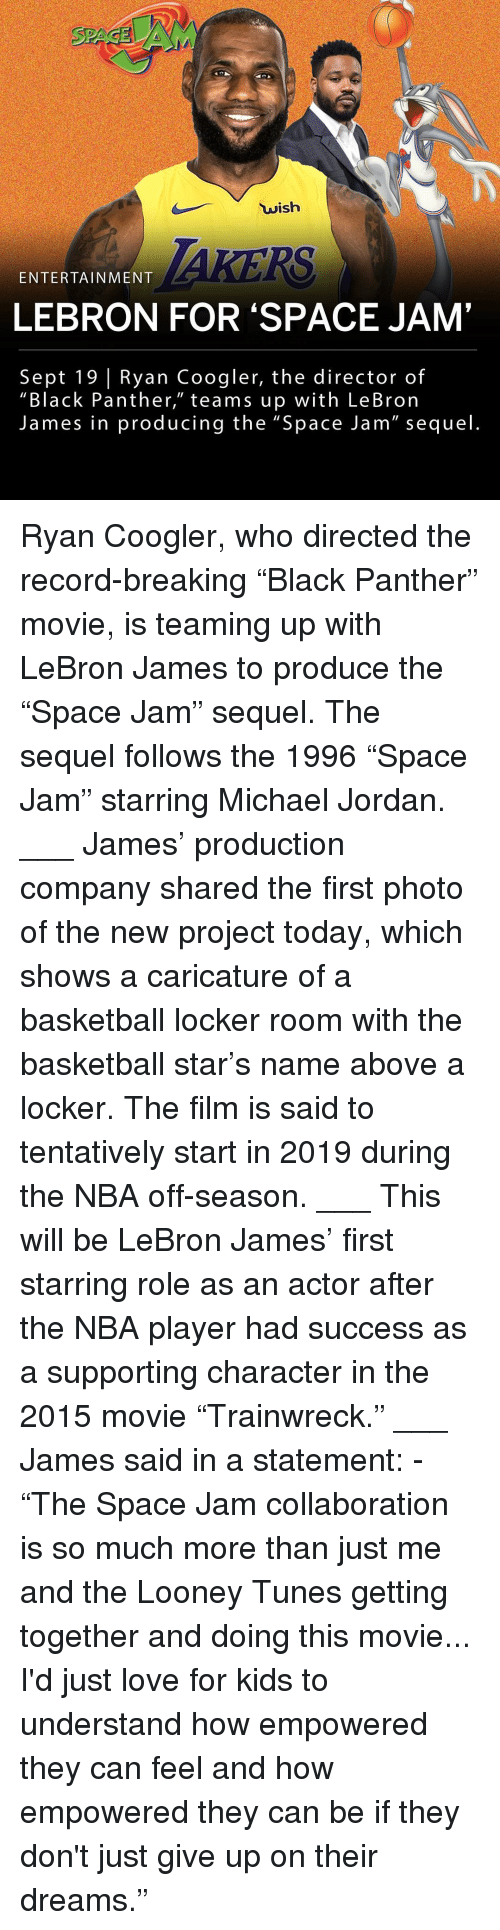 """collaboration: wish  ENTERTAINMENT  LEBRON FOR 'SPACE JAM'  Sept 19 Ryan Coogler, the director of  """"Black Panther,"""" teams up with LeBron  James in producing the """"Space Jam"""" sequel Ryan Coogler, who directed the record-breaking """"Black Panther"""" movie, is teaming up with LeBron James to produce the """"Space Jam"""" sequel. The sequel follows the 1996 """"Space Jam"""" starring Michael Jordan. ___ James' production company shared the first photo of the new project today, which shows a caricature of a basketball locker room with the basketball star's name above a locker. The film is said to tentatively start in 2019 during the NBA off-season. ___ This will be LeBron James' first starring role as an actor after the NBA player had success as a supporting character in the 2015 movie """"Trainwreck."""" ___ James said in a statement: - """"The Space Jam collaboration is so much more than just me and the Looney Tunes getting together and doing this movie... I'd just love for kids to understand how empowered they can feel and how empowered they can be if they don't just give up on their dreams."""""""